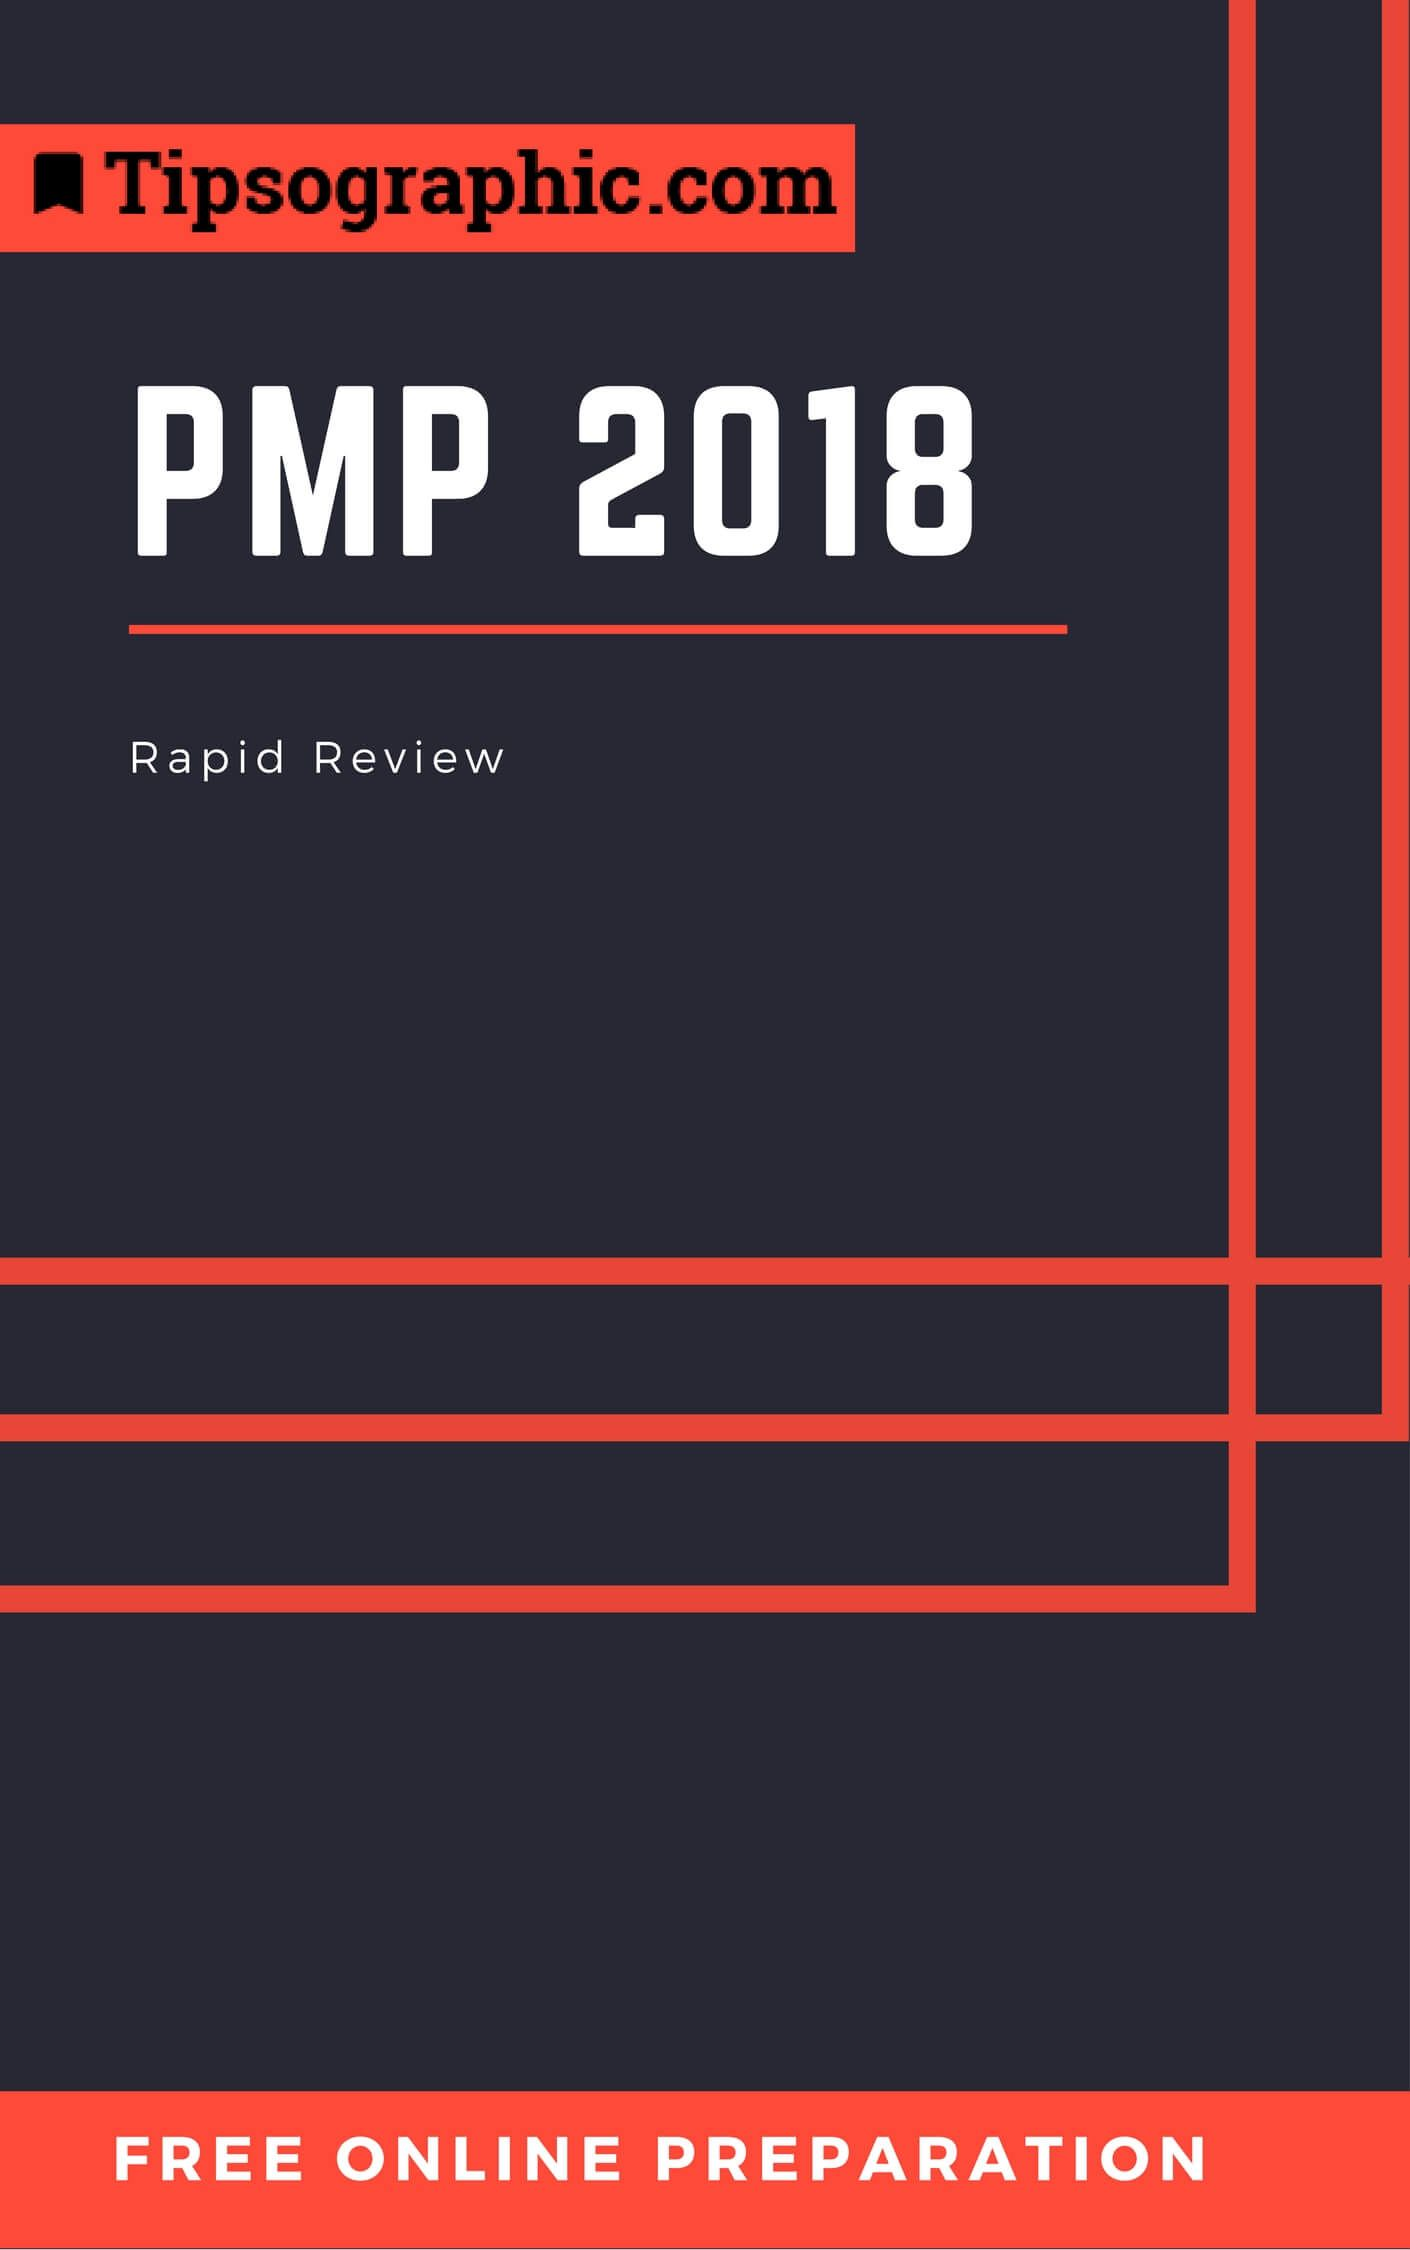 pmp 2018 rapid review free online preparation tipsographic